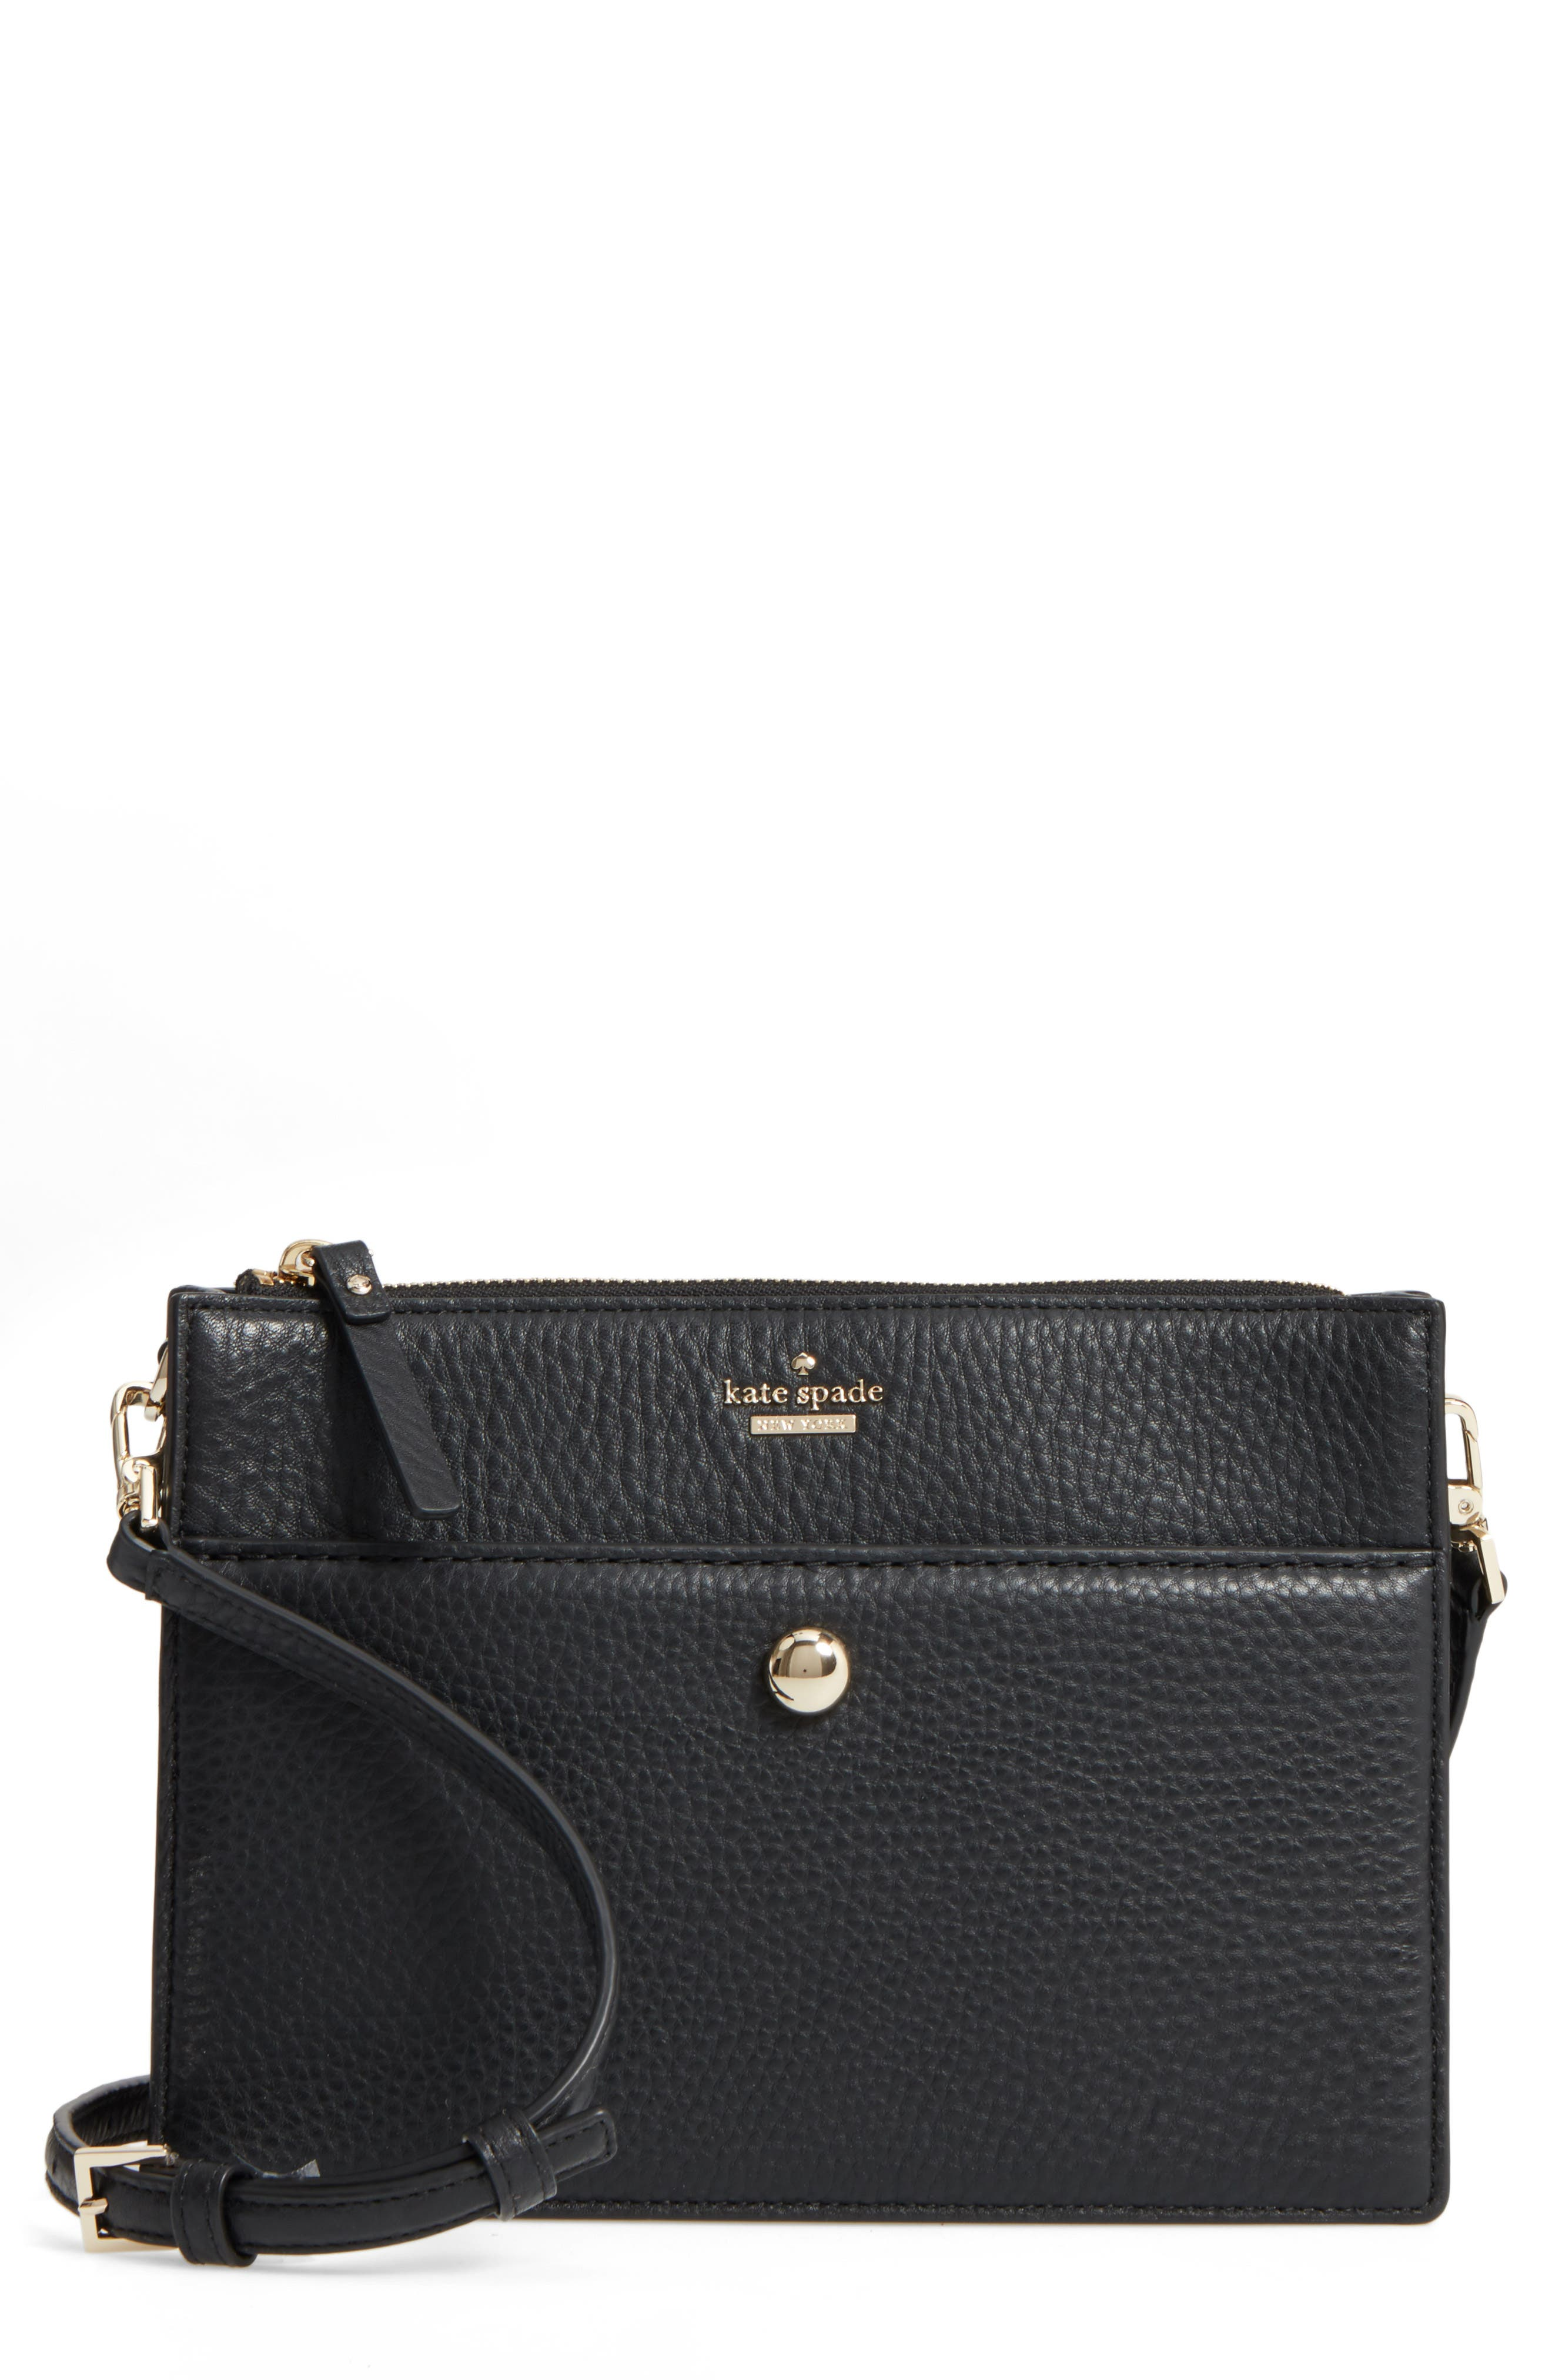 kate spade new york steward street clarise leather shoulder bag